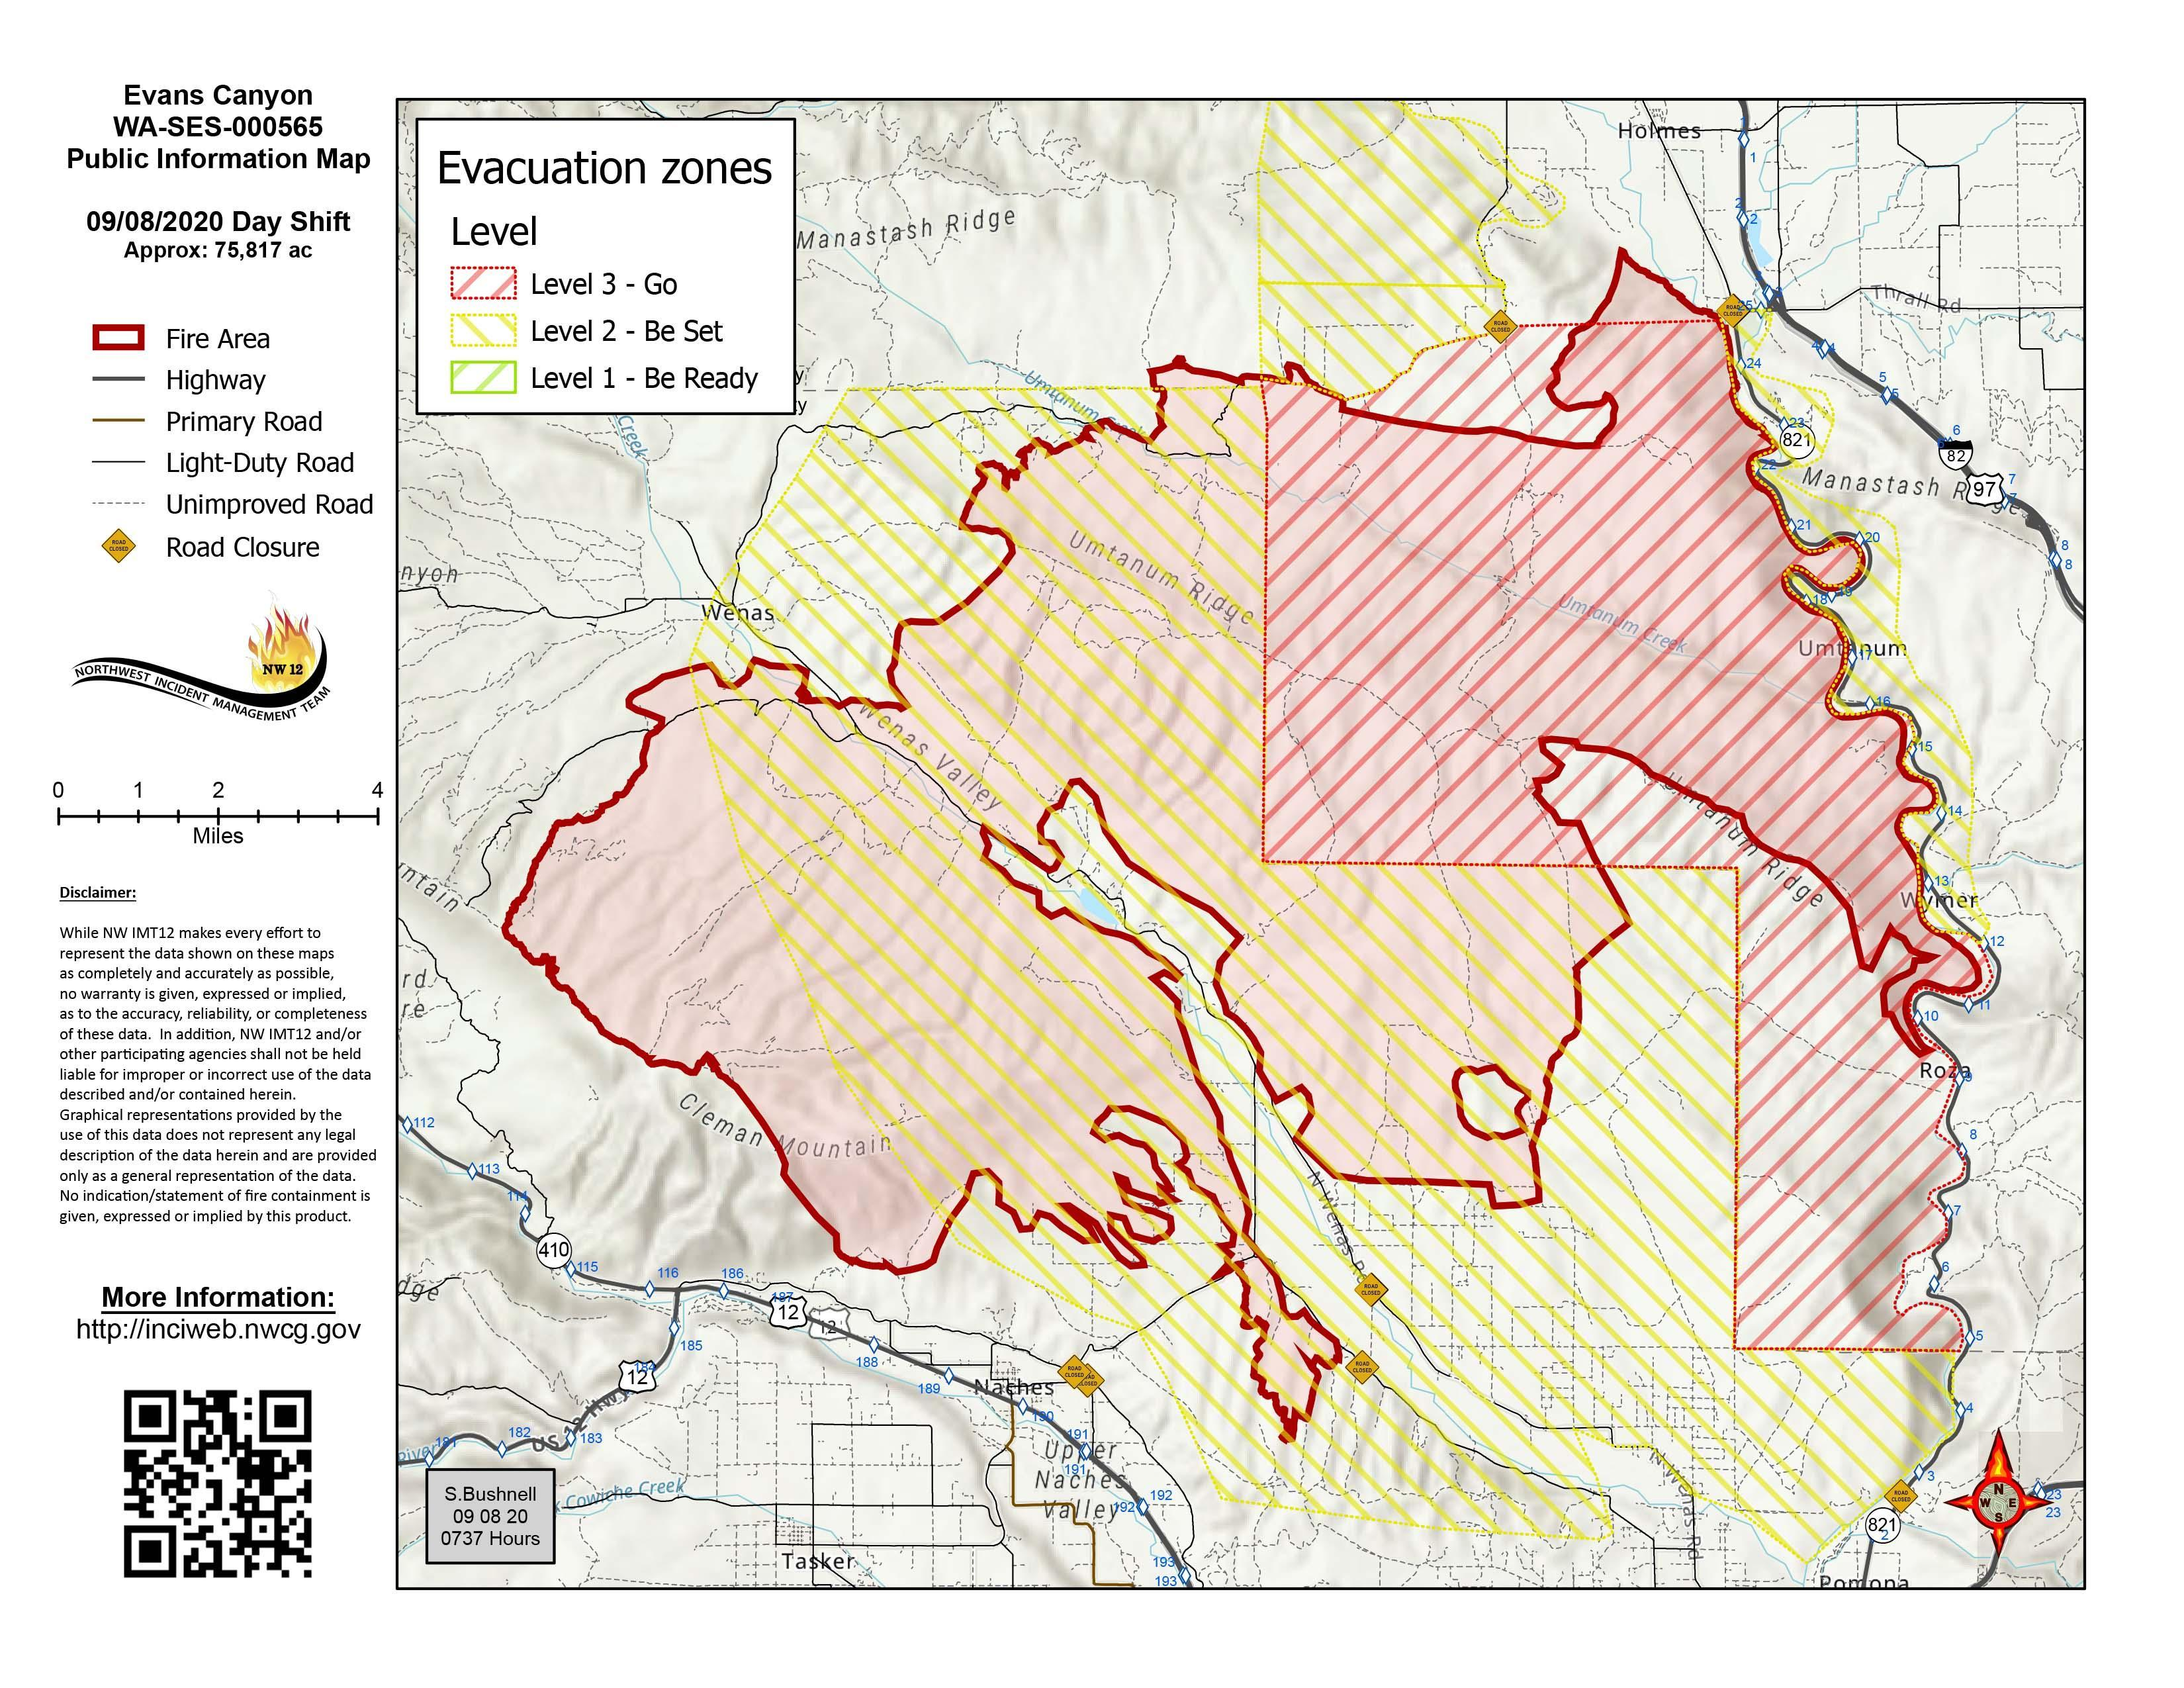 Evans Canyon Fire Map - September 8